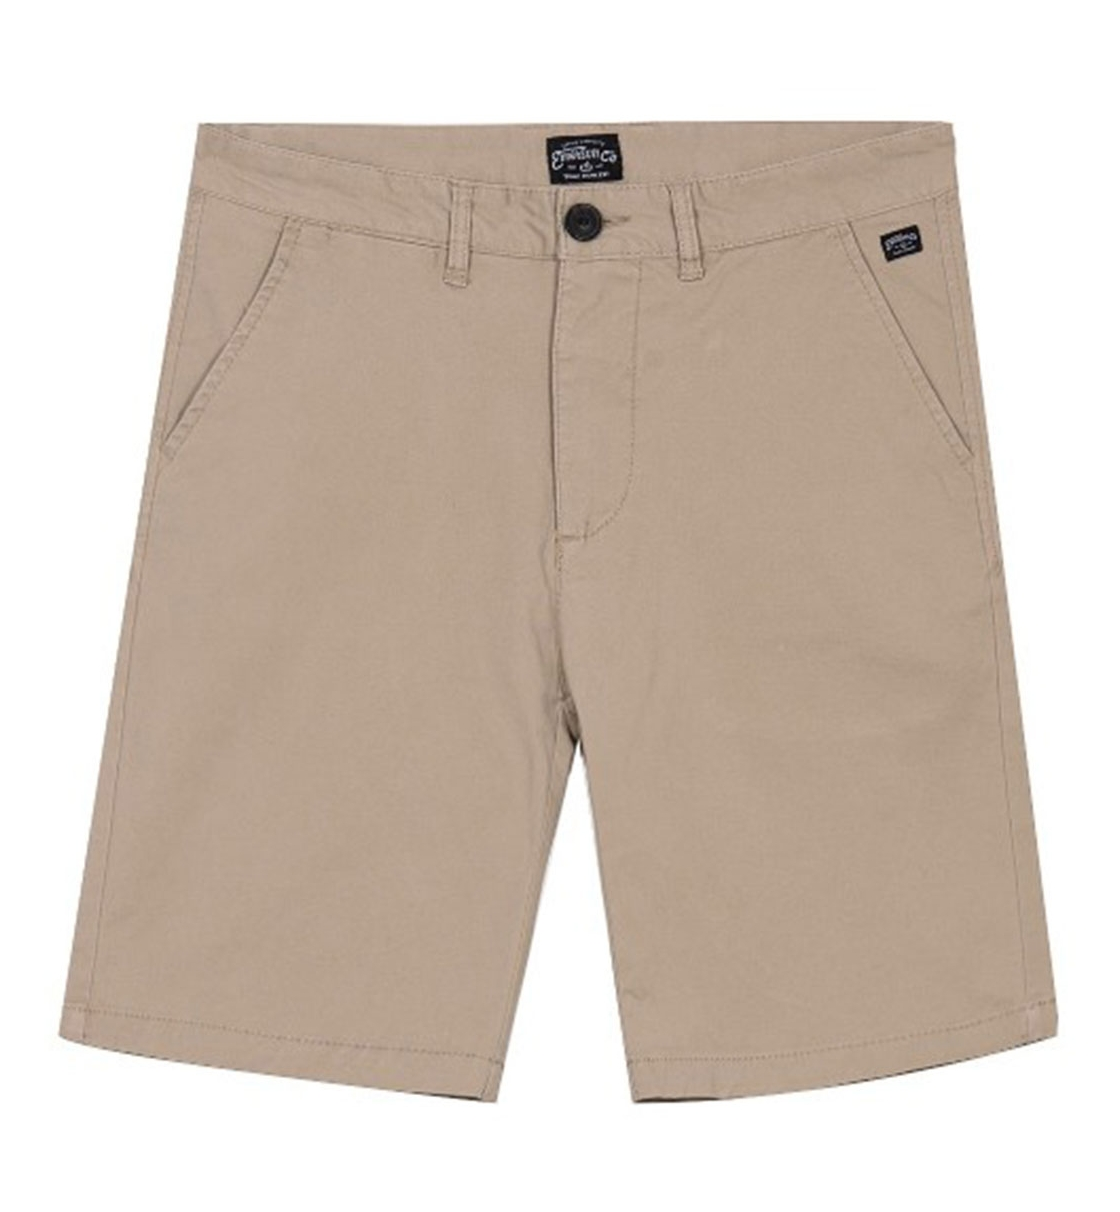 Emerson Ανδρική Βερμούδα Men'S Stretch Chino Short Pants EM46.91